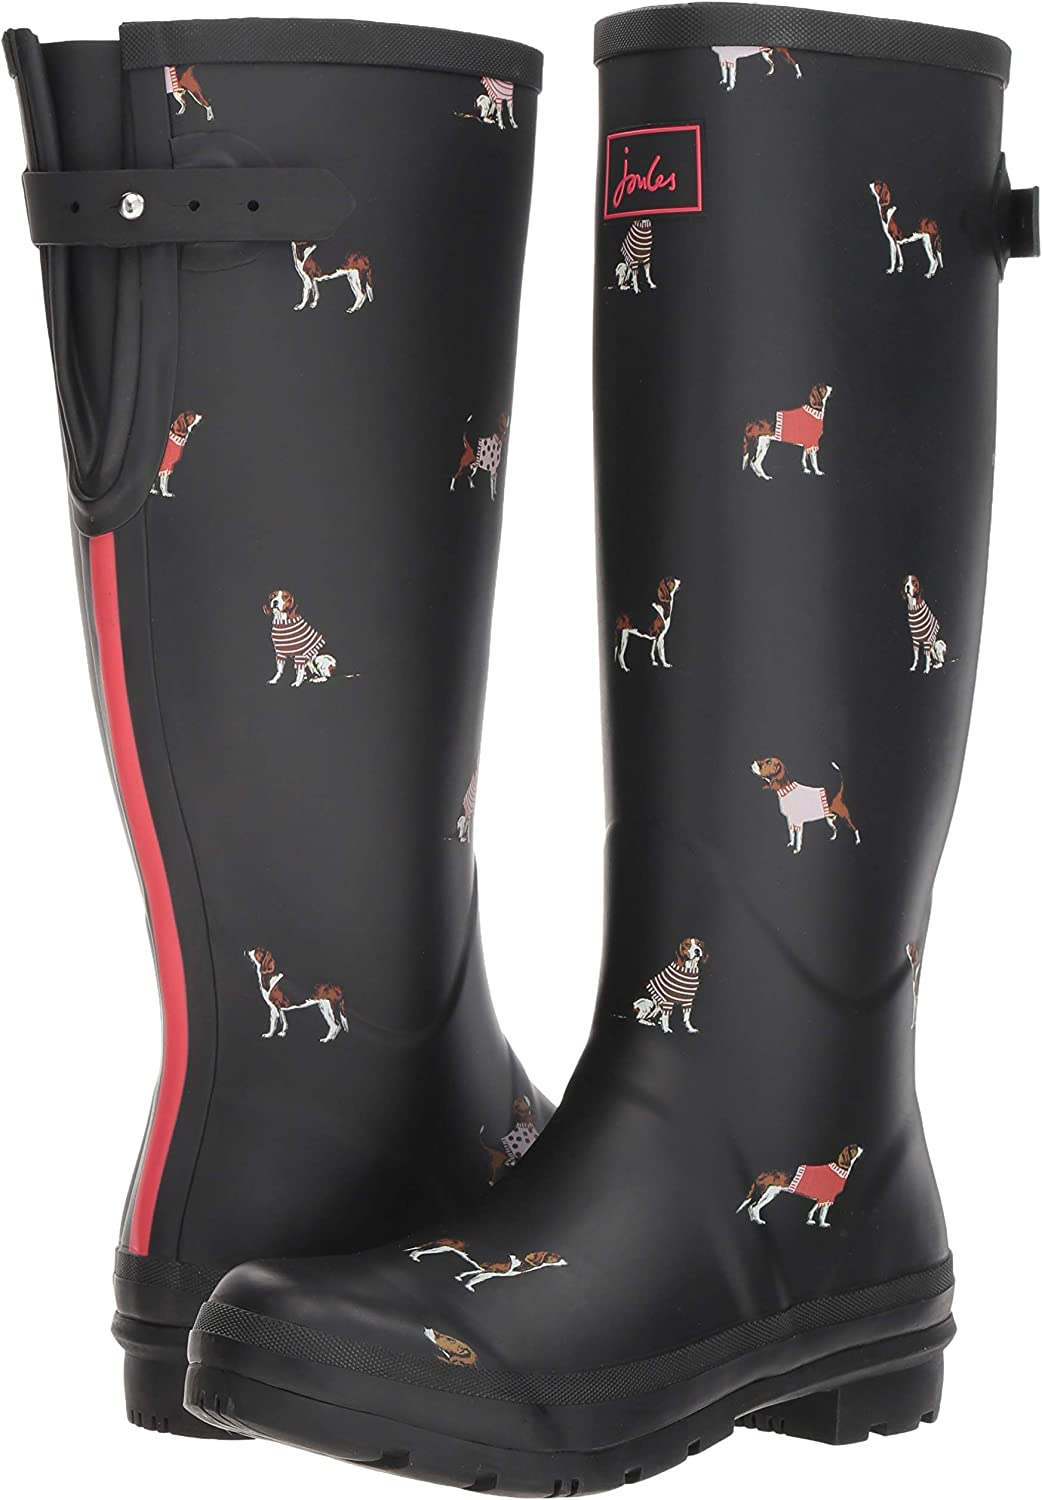 Joules Womens Wellyprint Wellington Boots